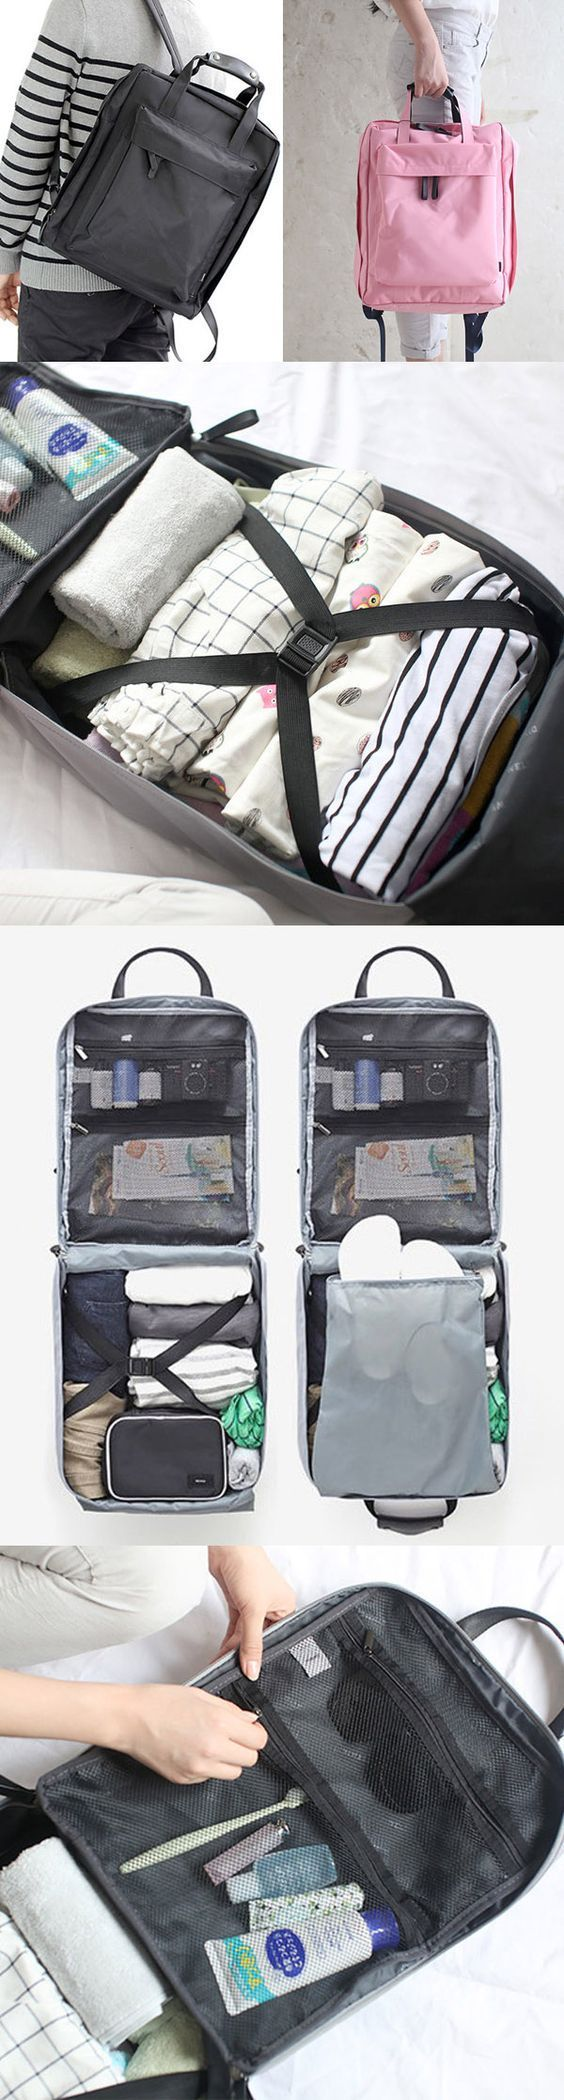 Unisex Travel Packing Bags Waterproof Nylon Storage Backpack Outdoor Women Men Handbag Bagail.com